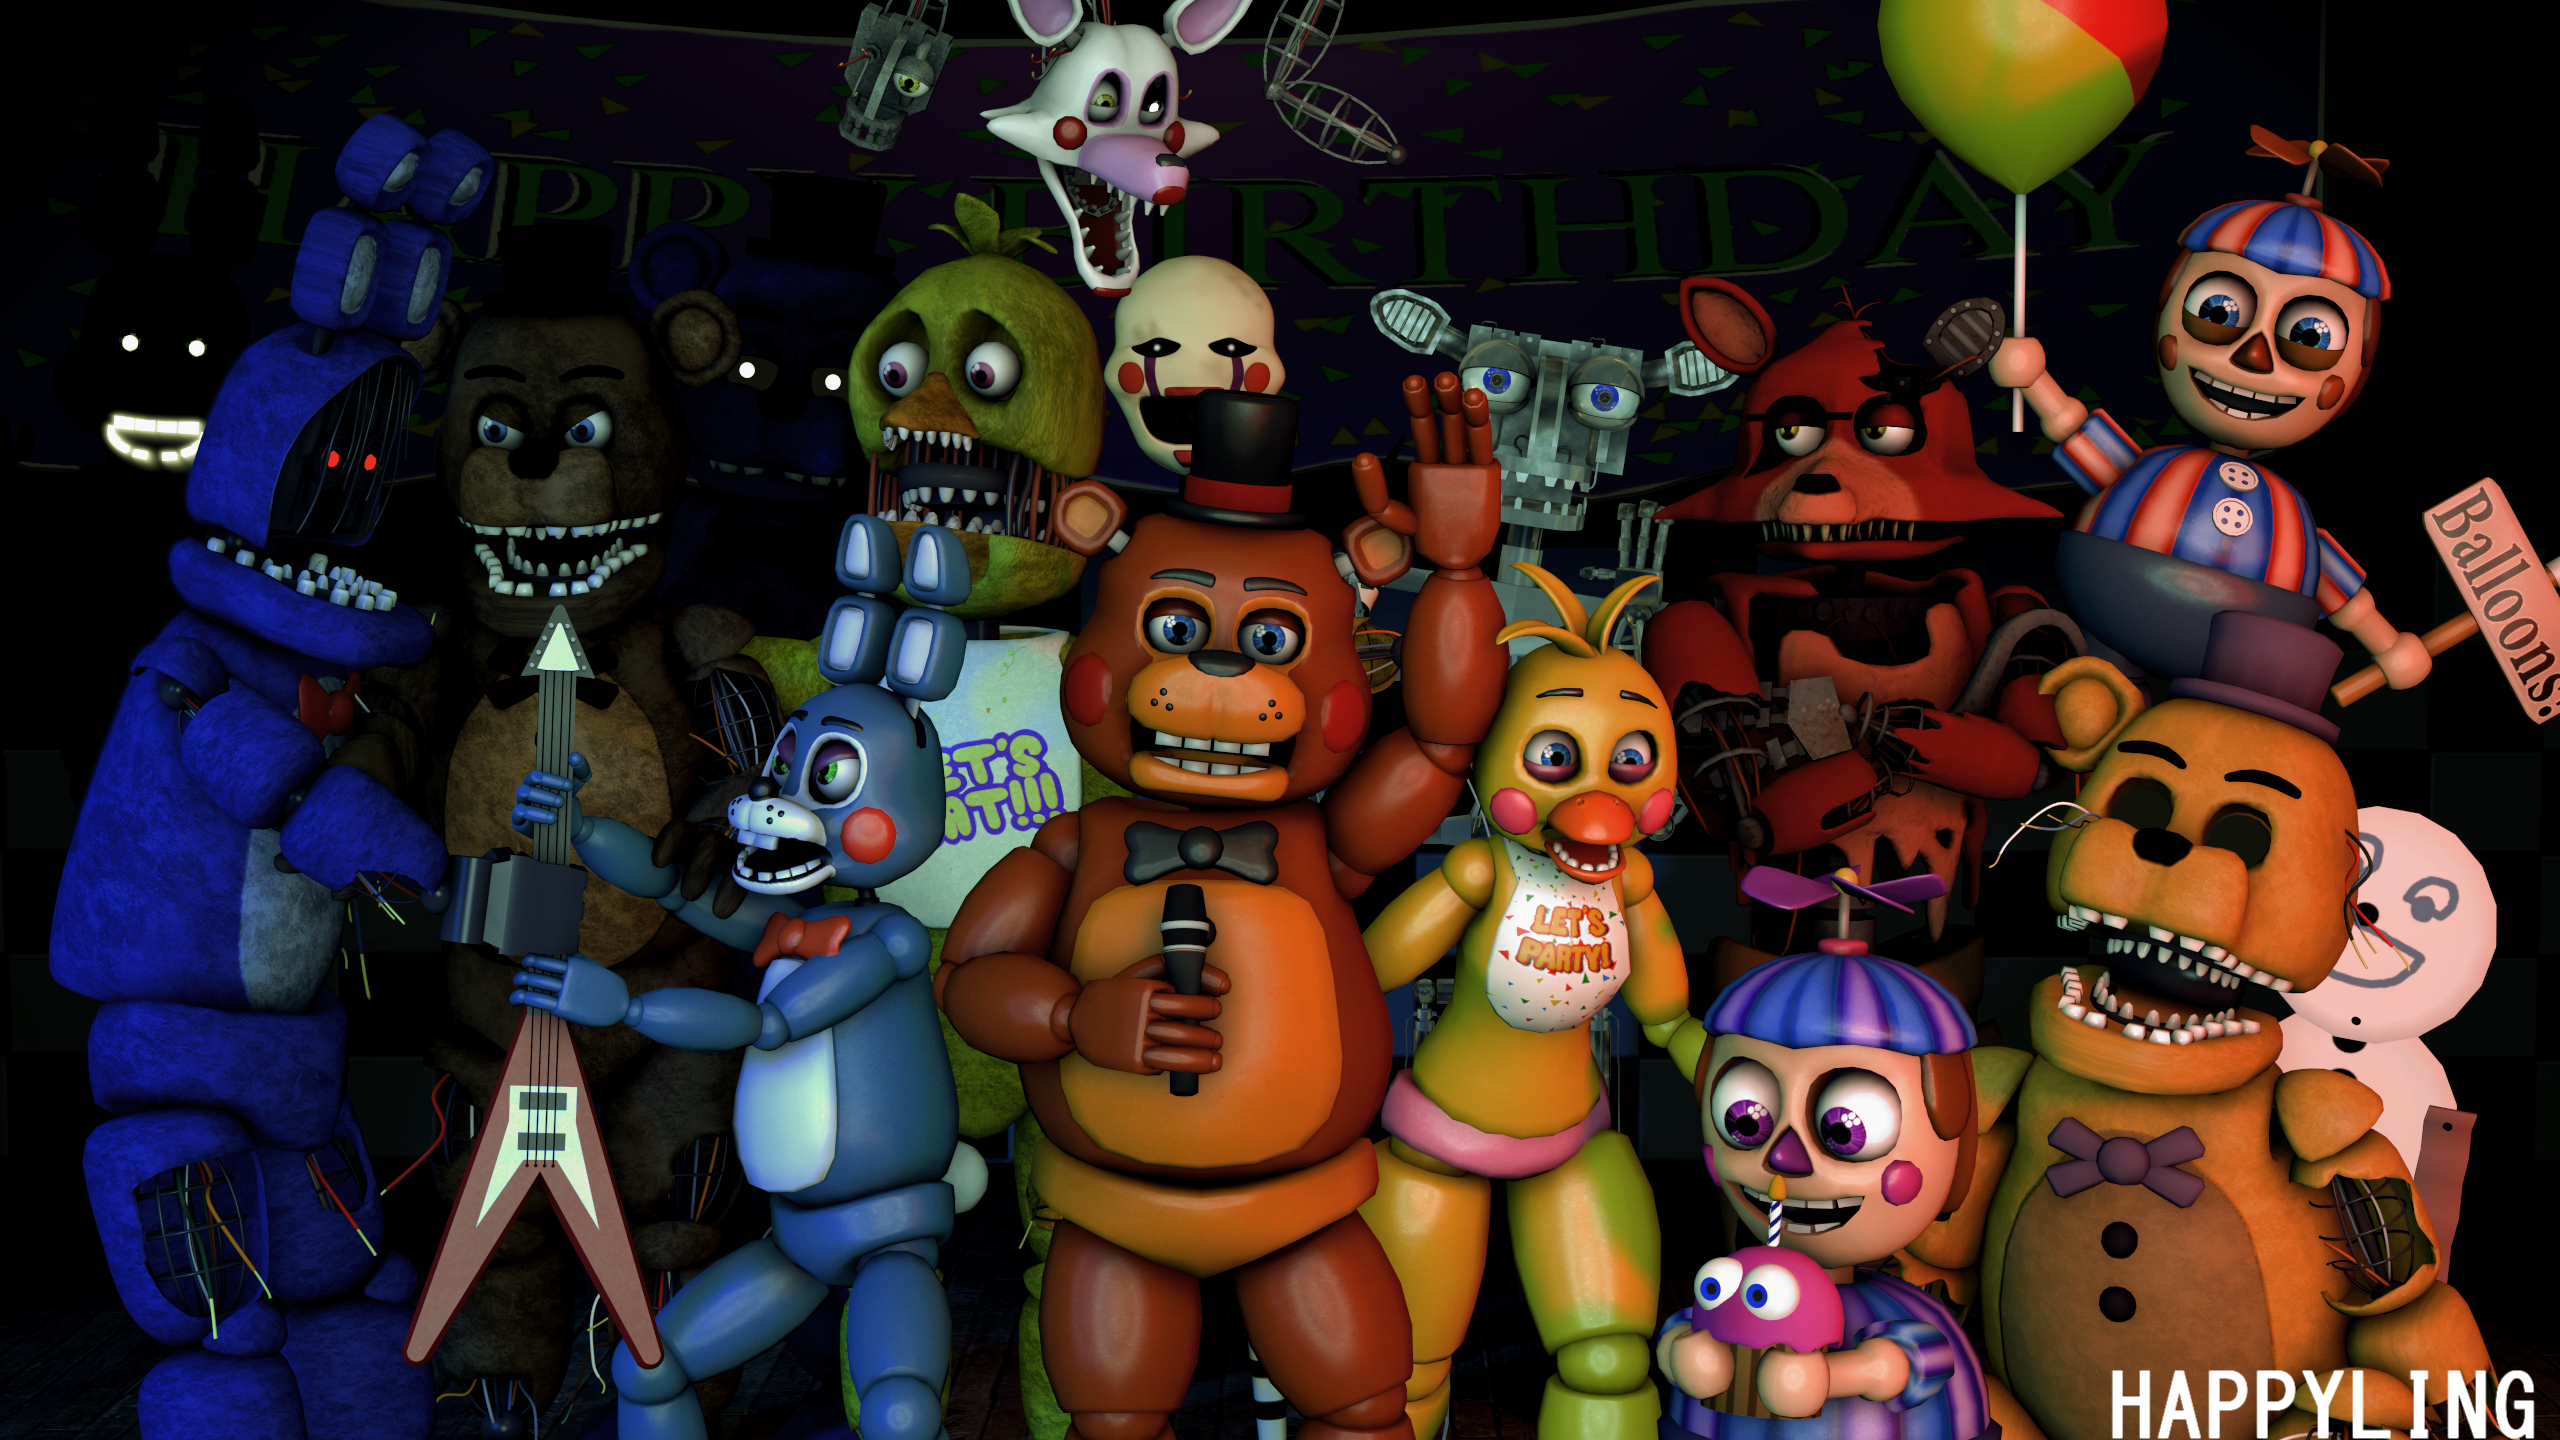 freddy из five nights at freddy's 2 картинки